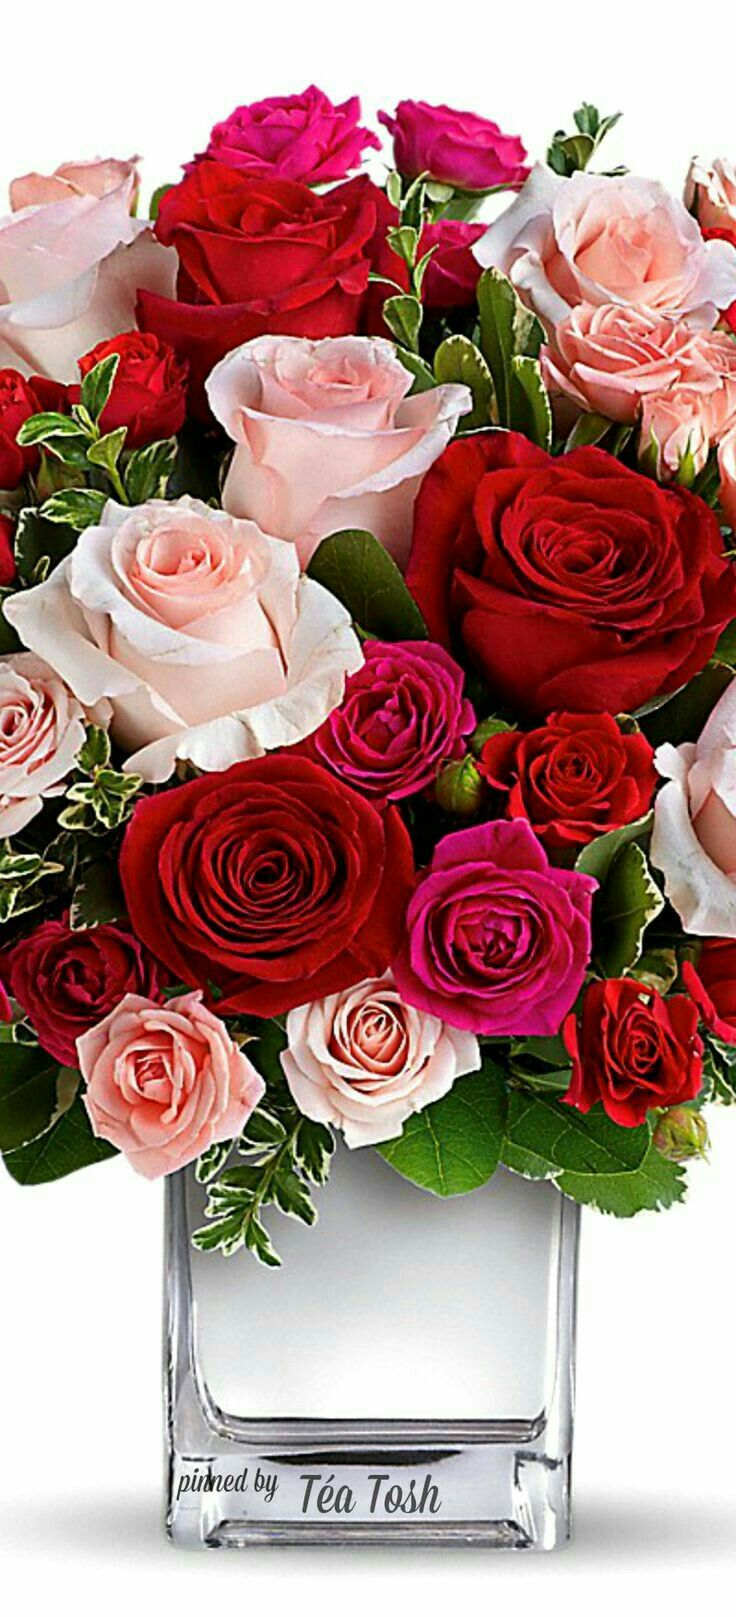 Tea ToshLOVE Medley Bouquet W Red Roses Thank You For The Beautiful Love